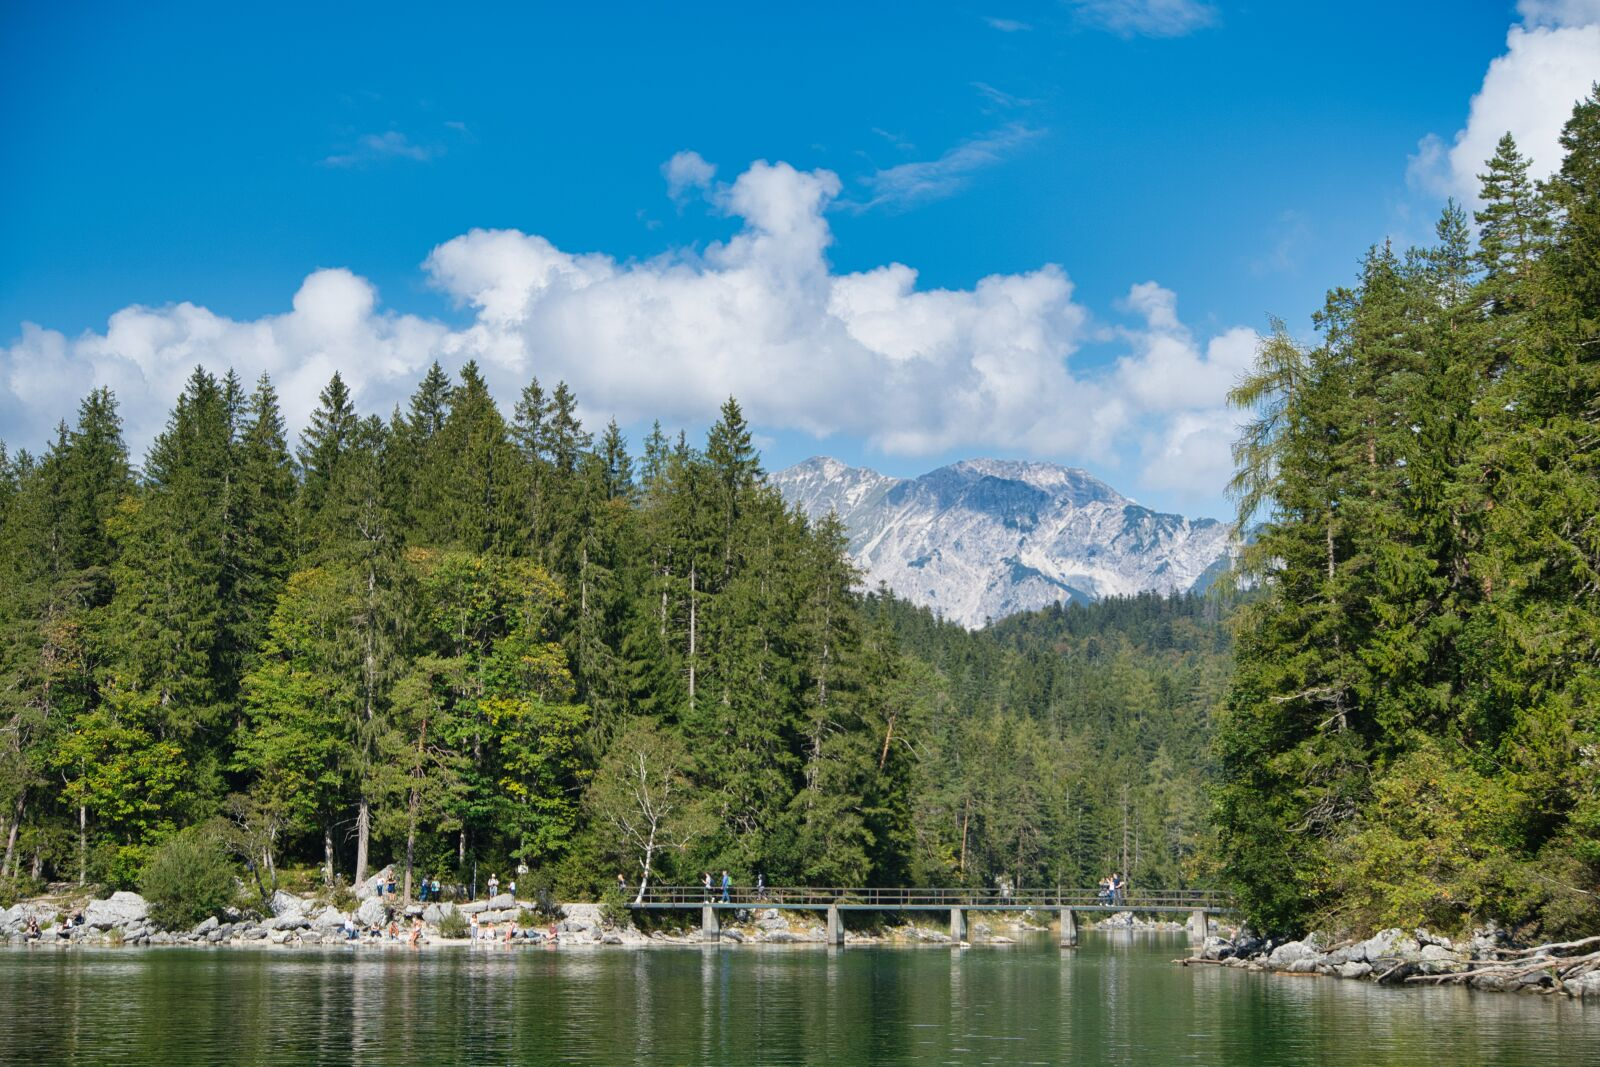 """Sony a6400 sample photo. """"Lake, forest, nature"""" photography"""